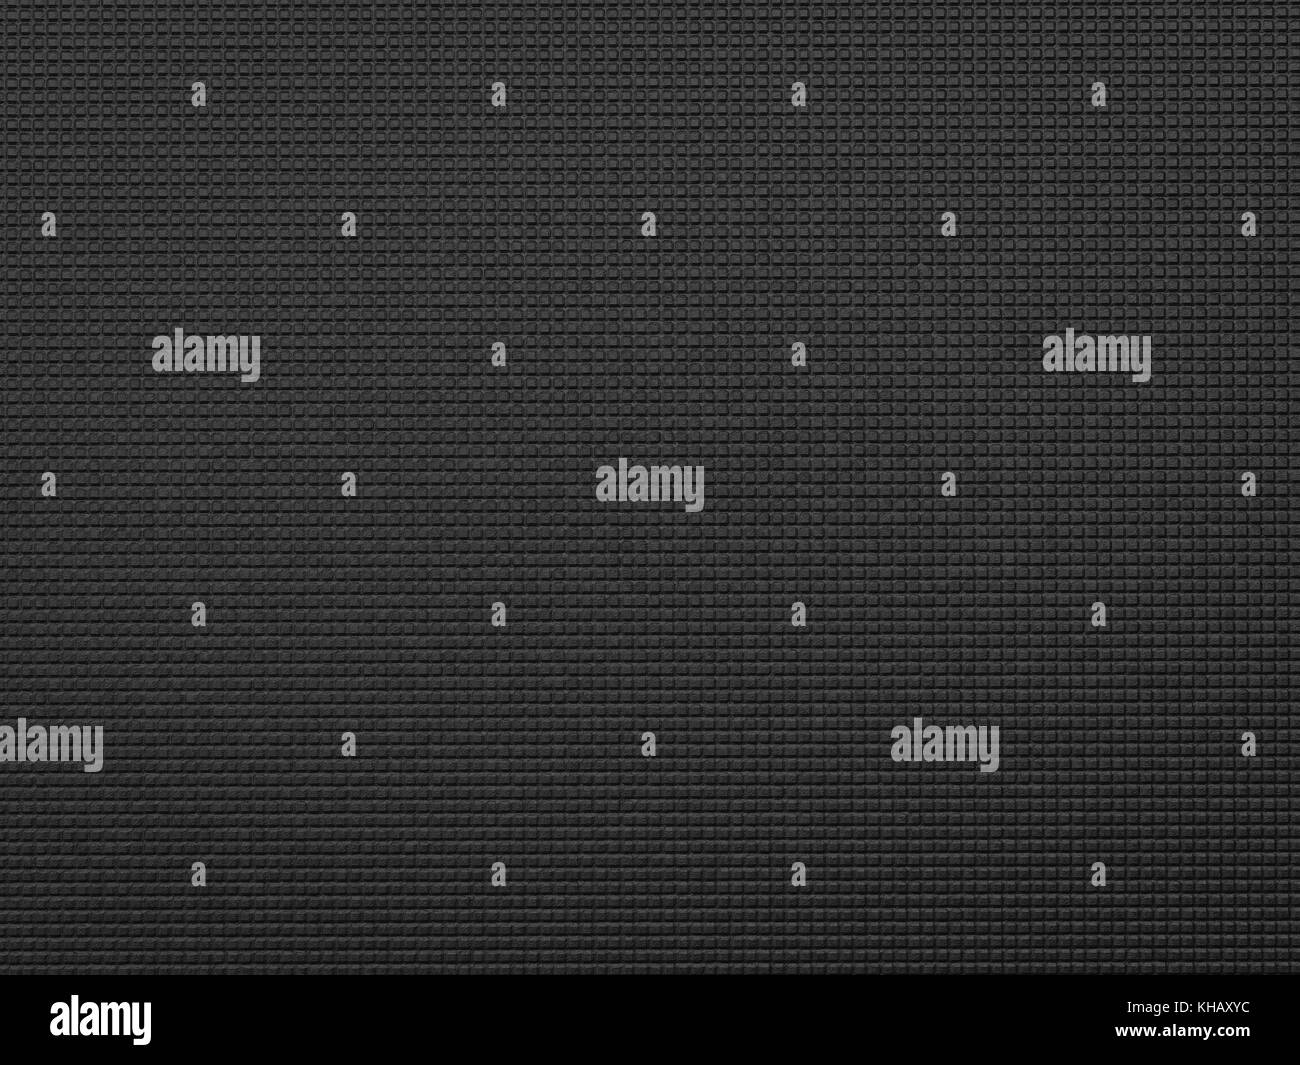 3d Rendering Black Yoga Mat Background Or Top View